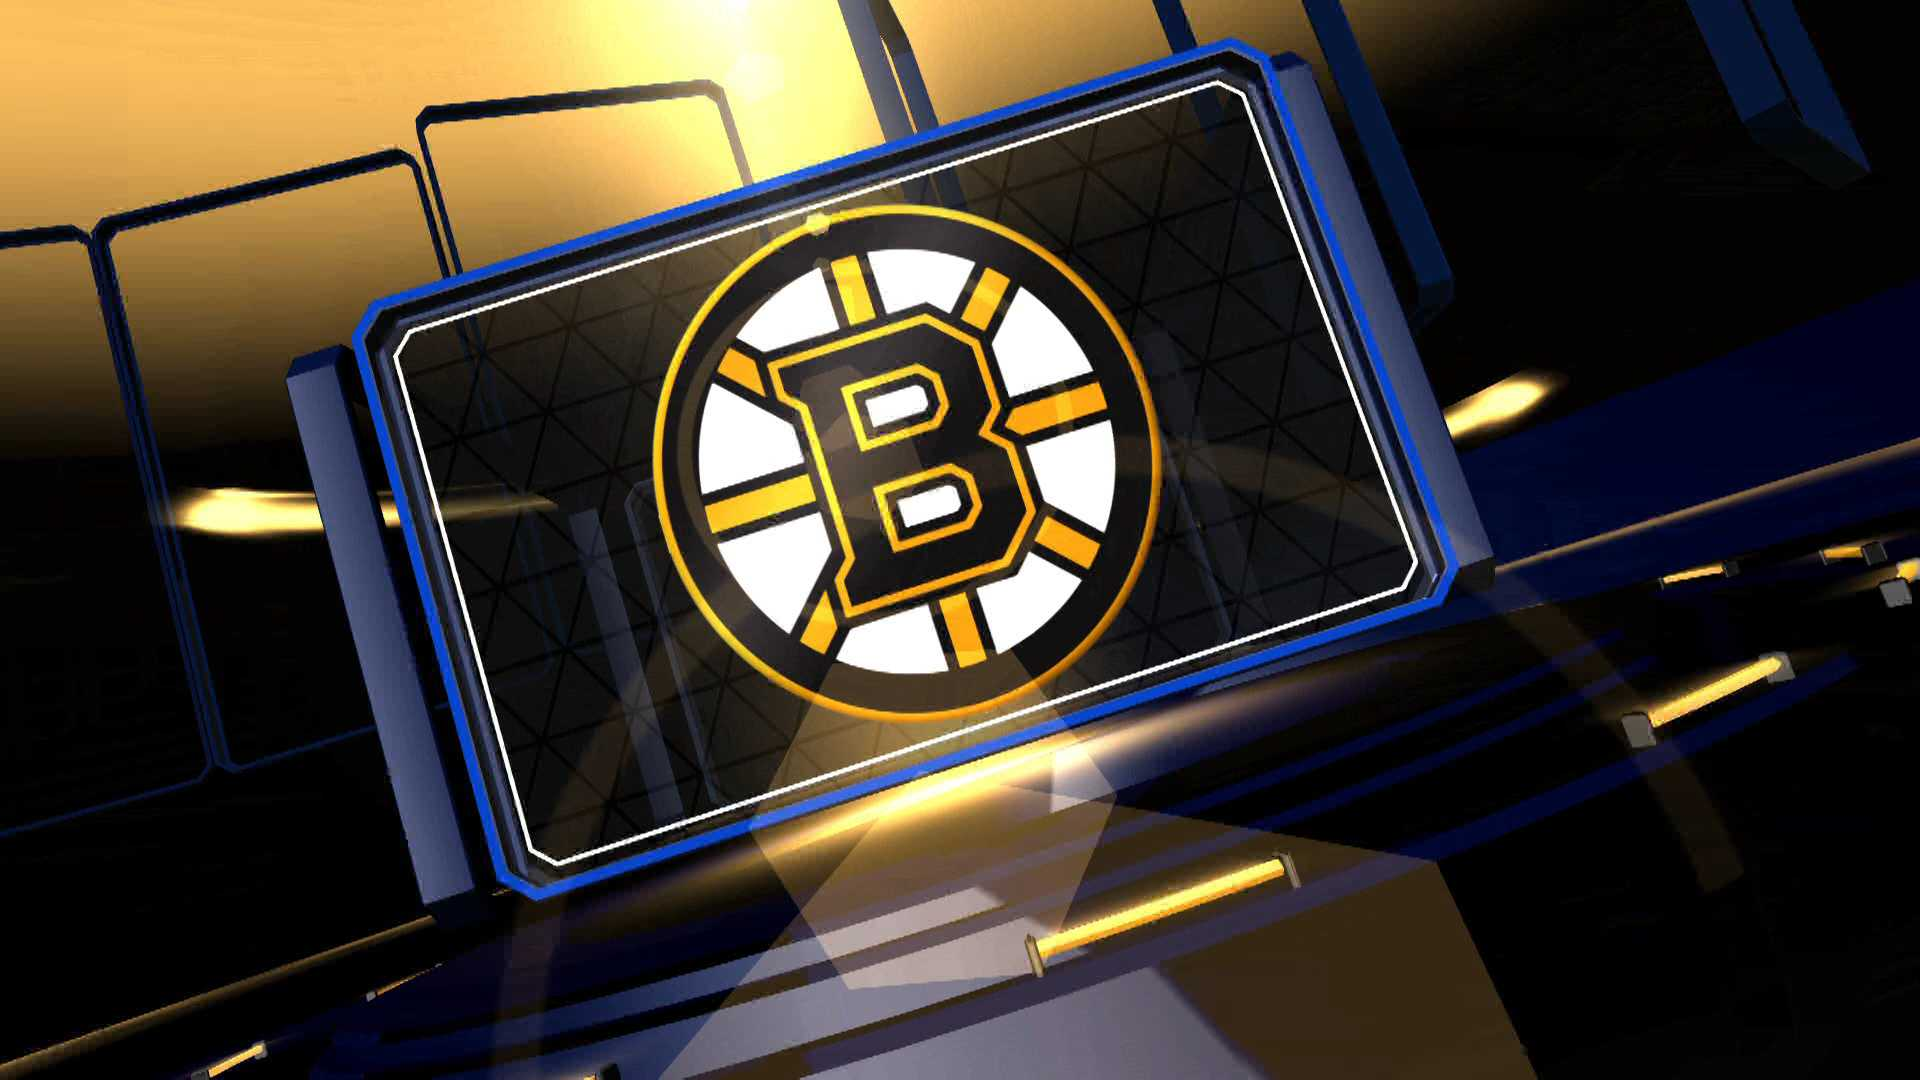 Boston Bruins, Bruins GENERIC